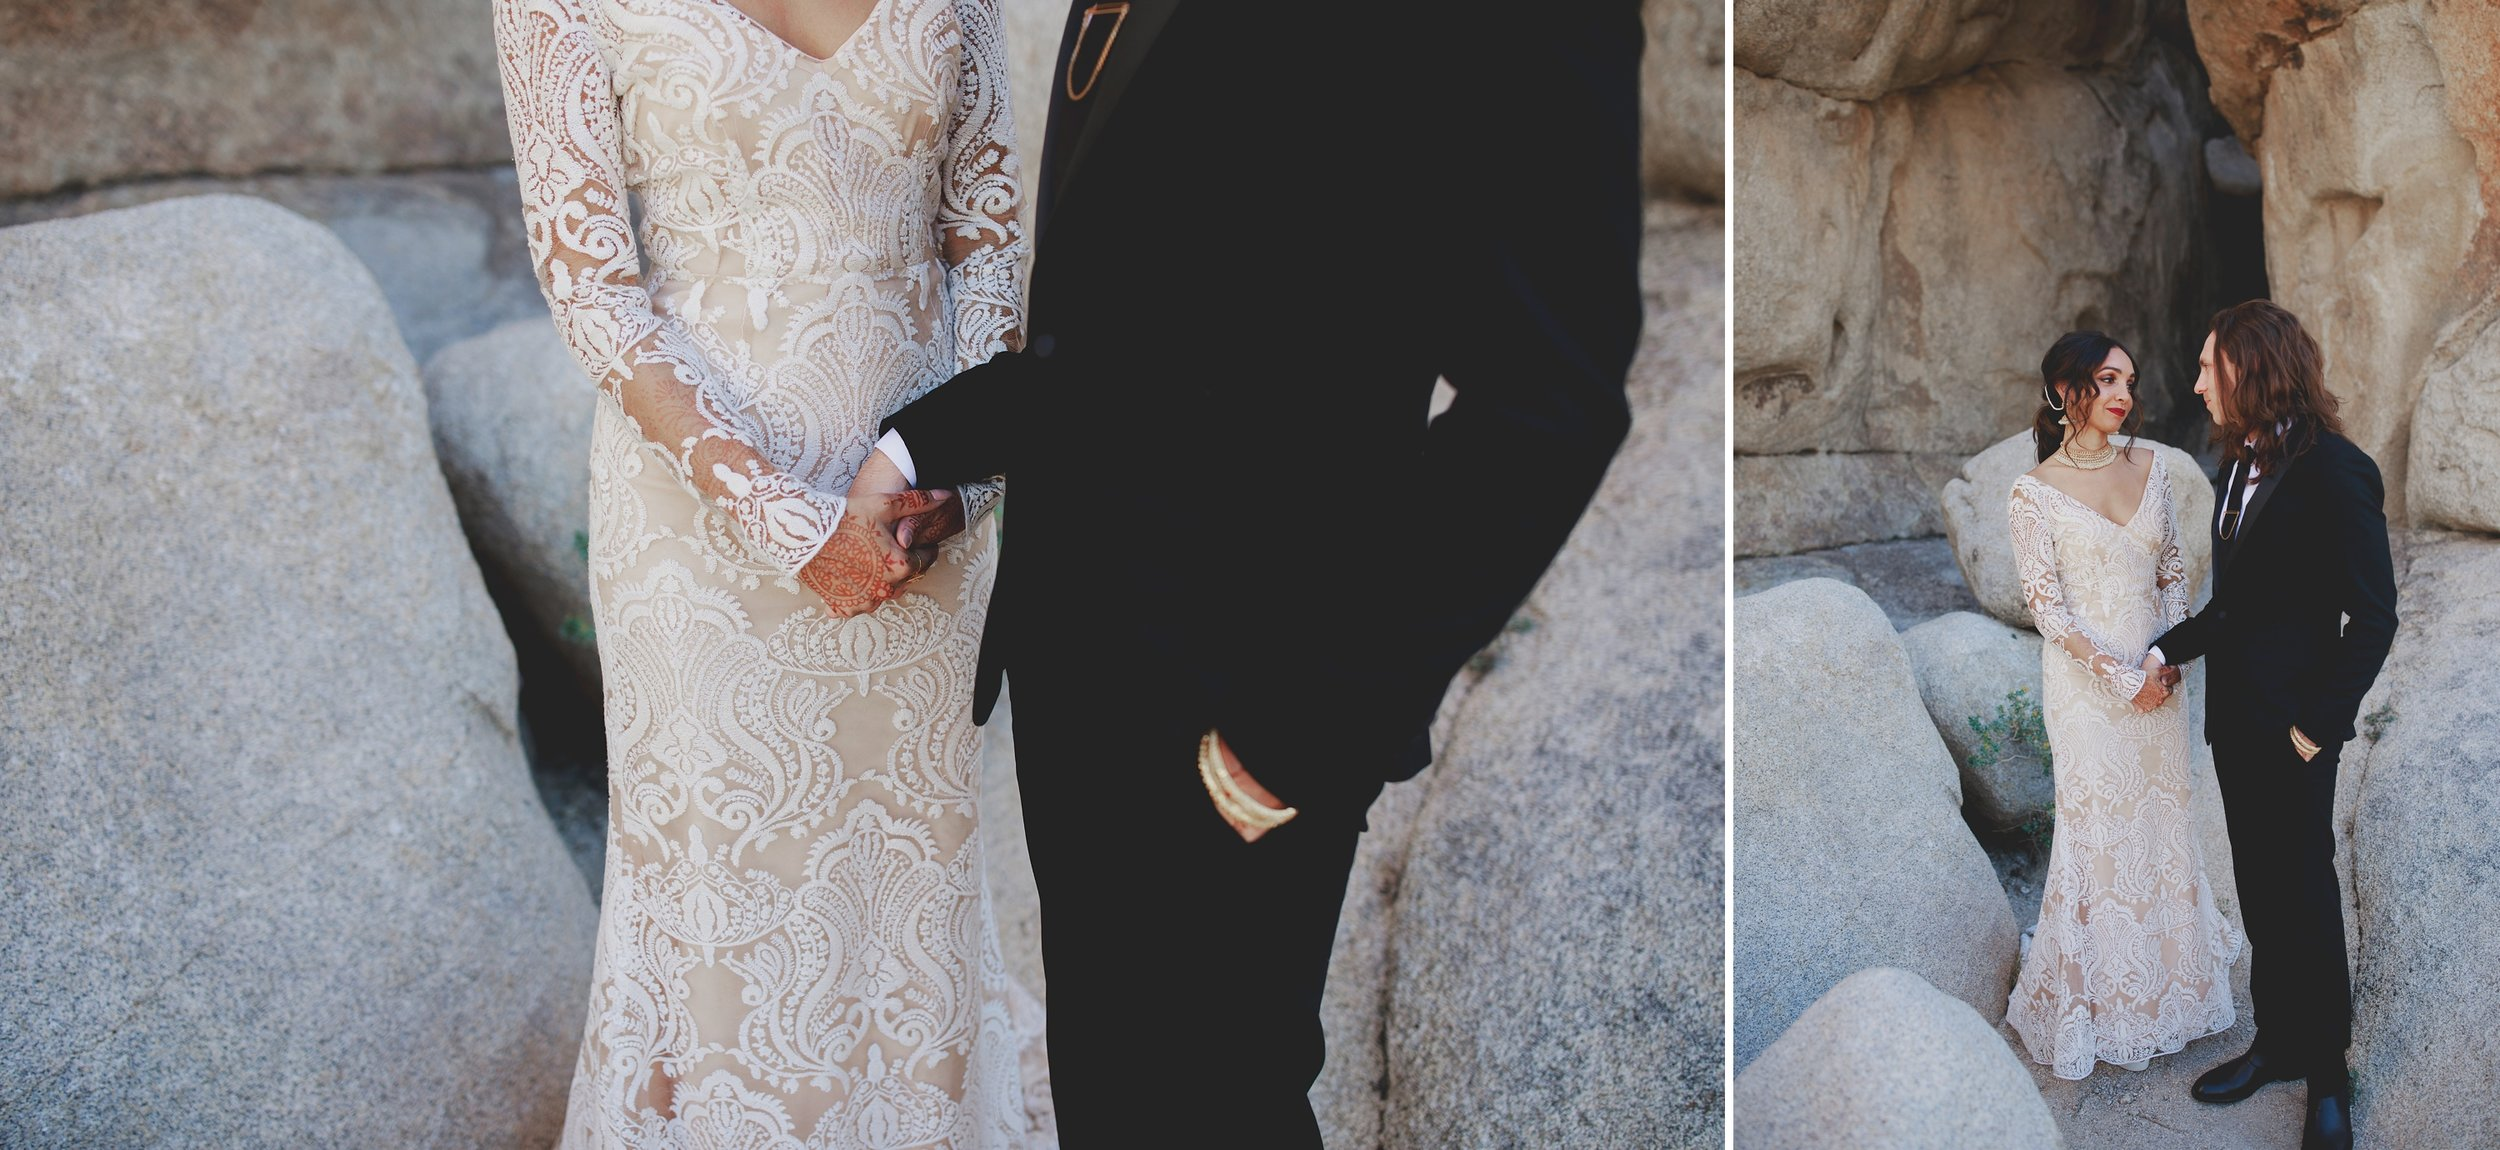 amanda_vanvels_joshua_tree_inn_wedding_037.jpg